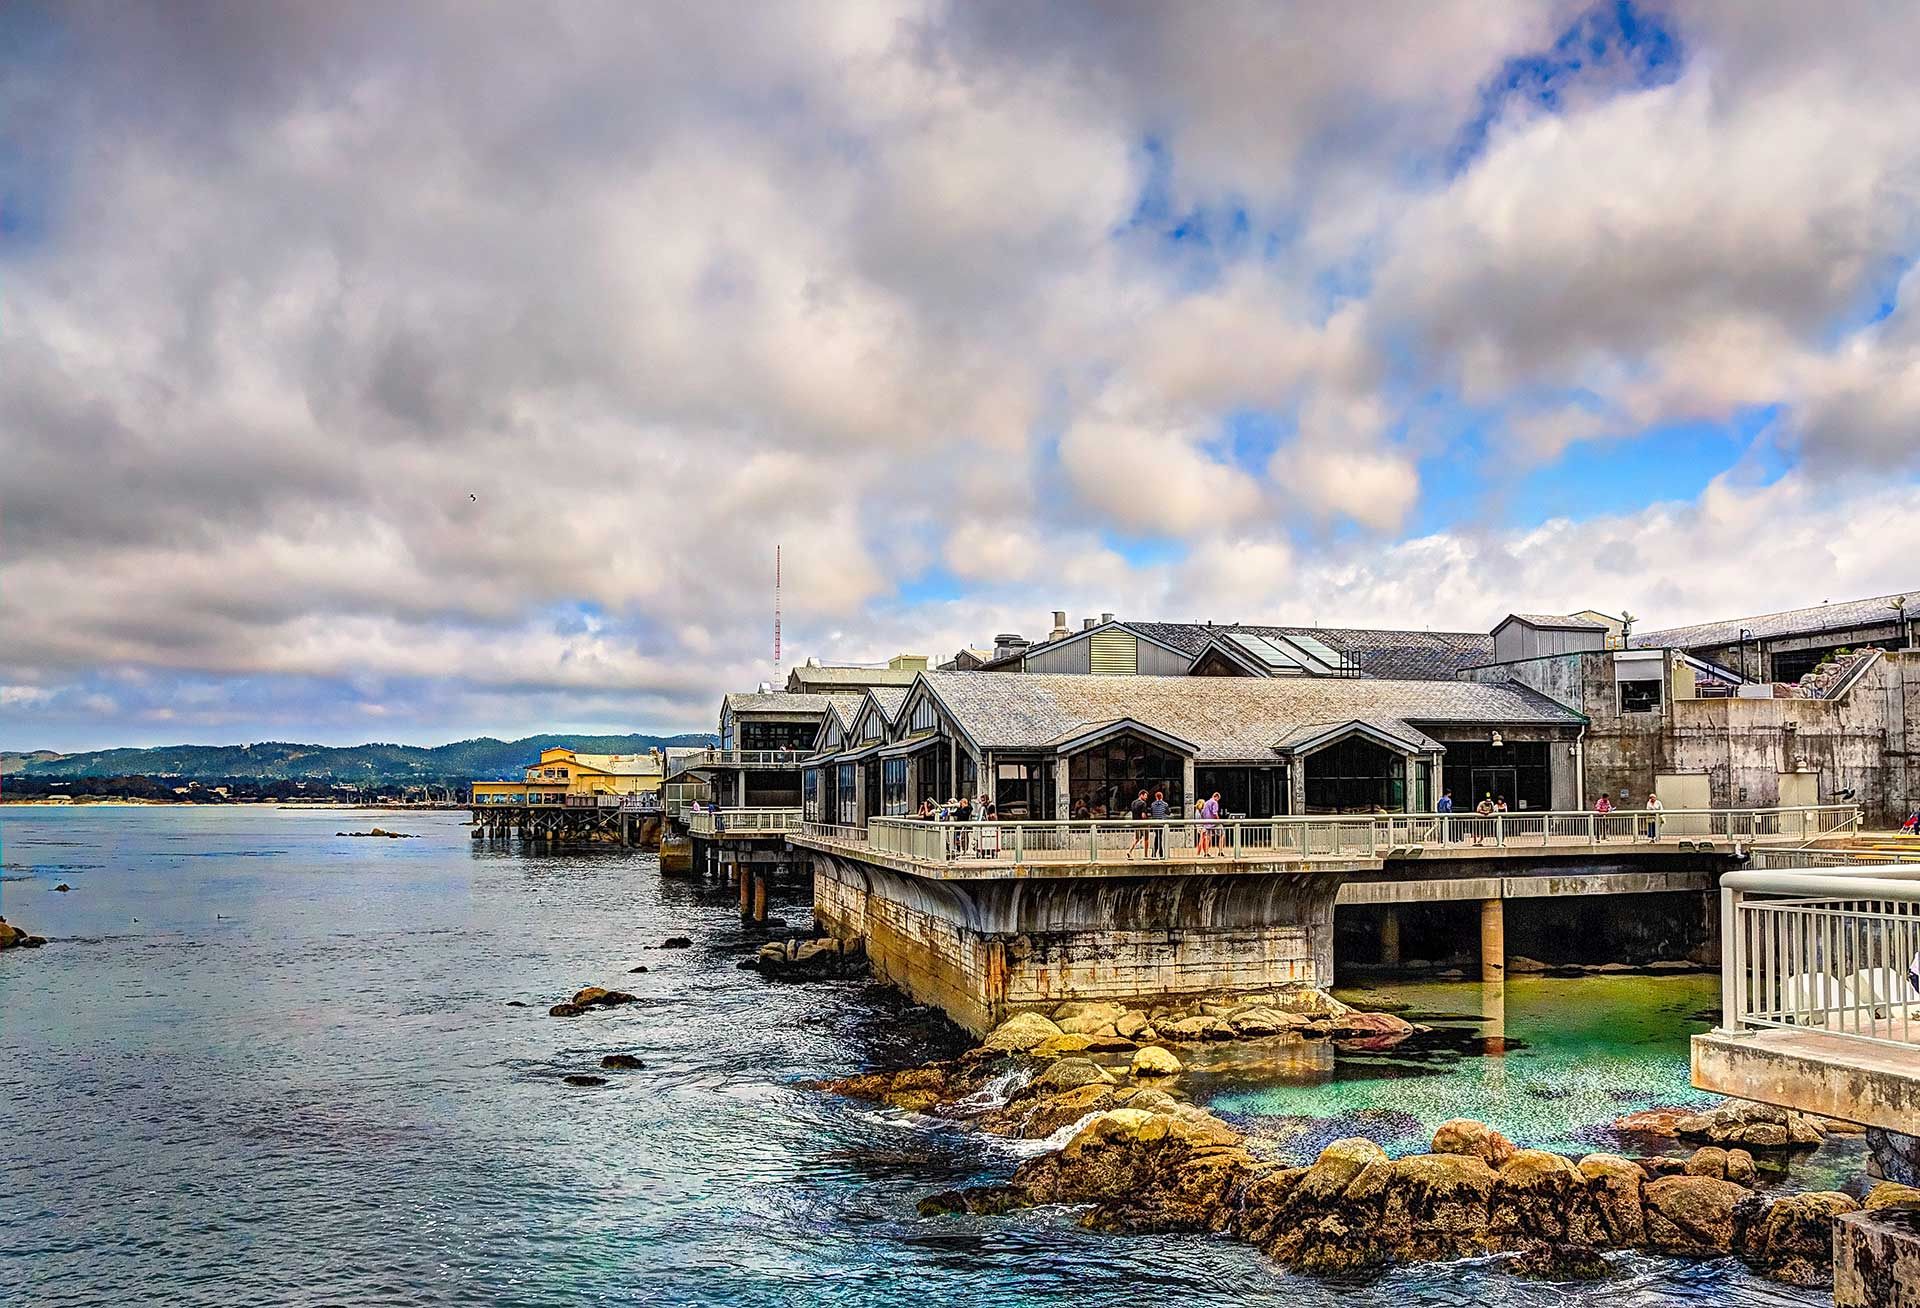 Attractions - Monterey Bay Aquarium